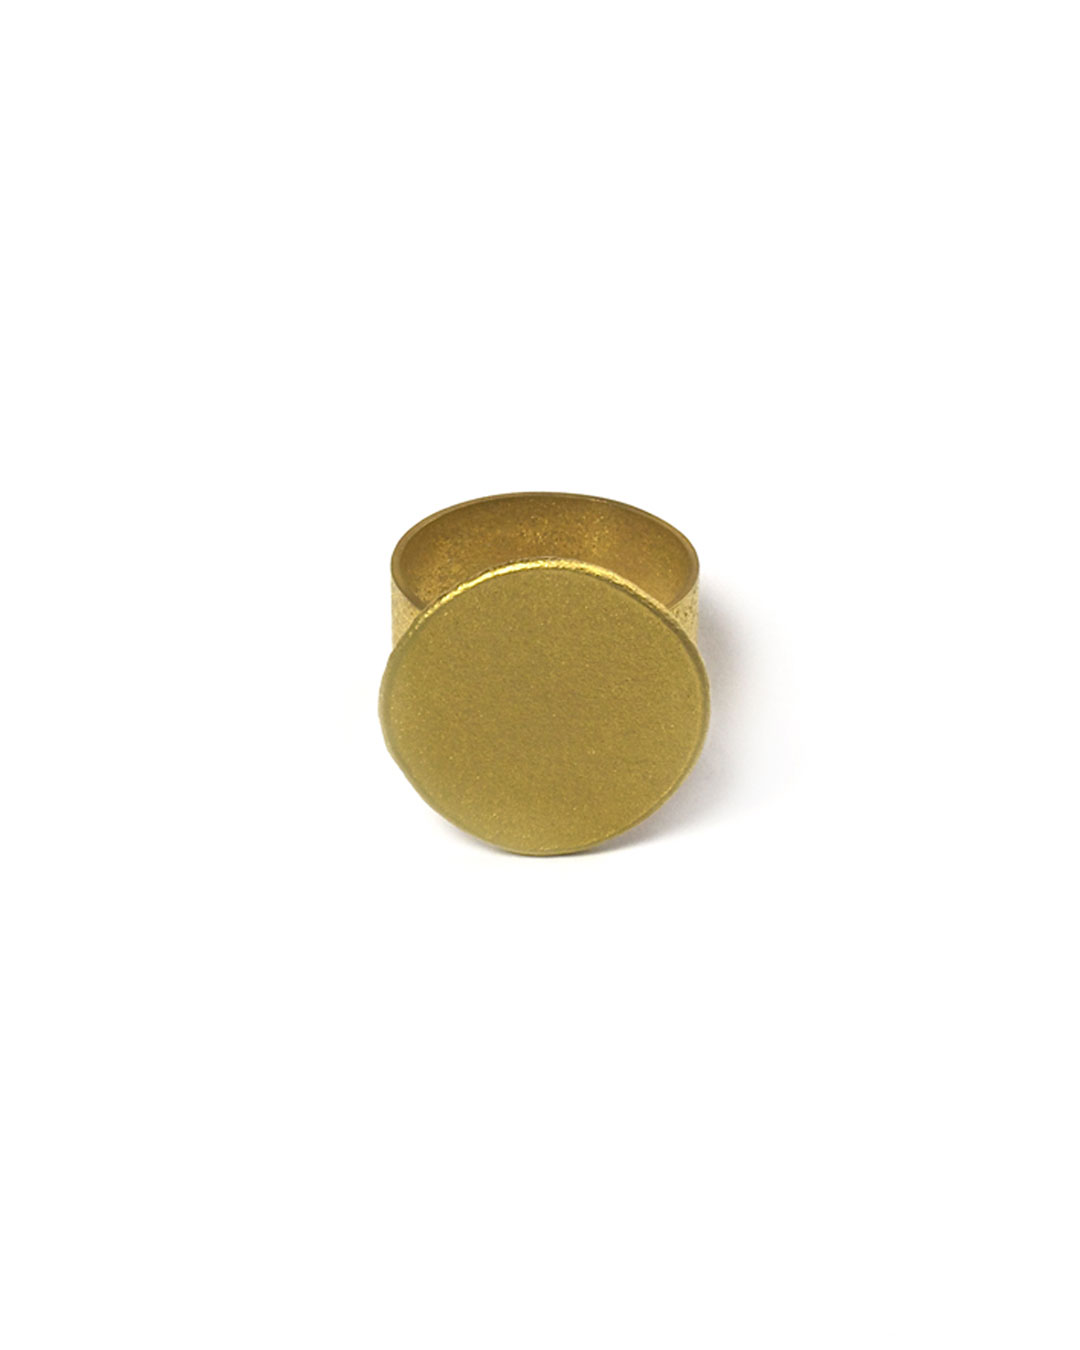 Karin Johansson, untitled, 2010, ring; 18ct gold, 20 x 20 x 20 mm, €2500